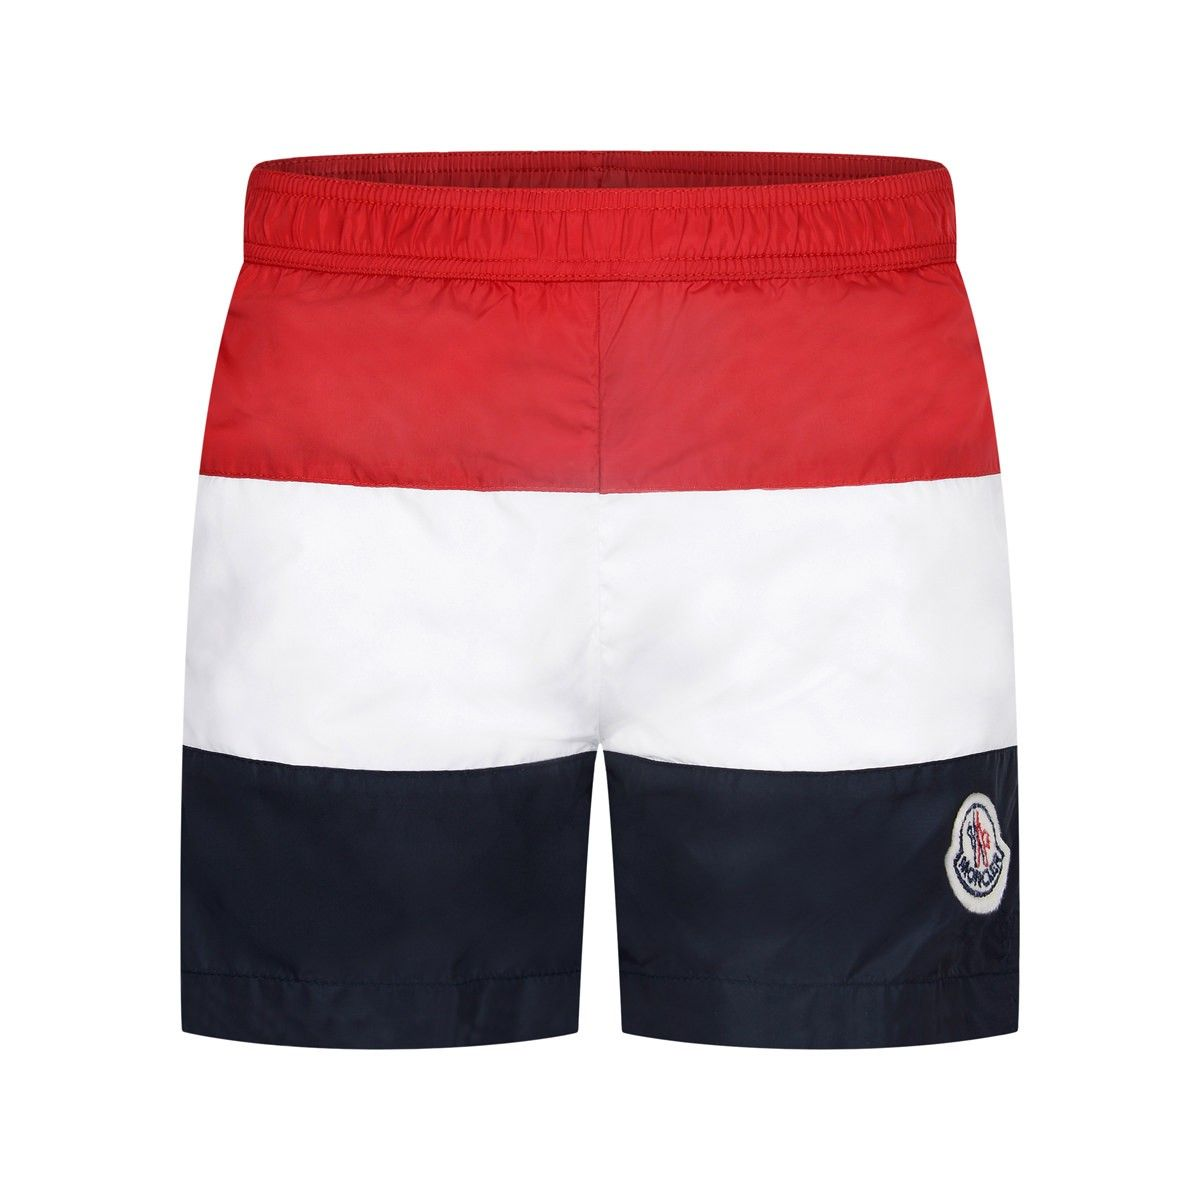 Moncler Boys Red & Navy Striped Swim Shorts | Drenge | Pinterest ...